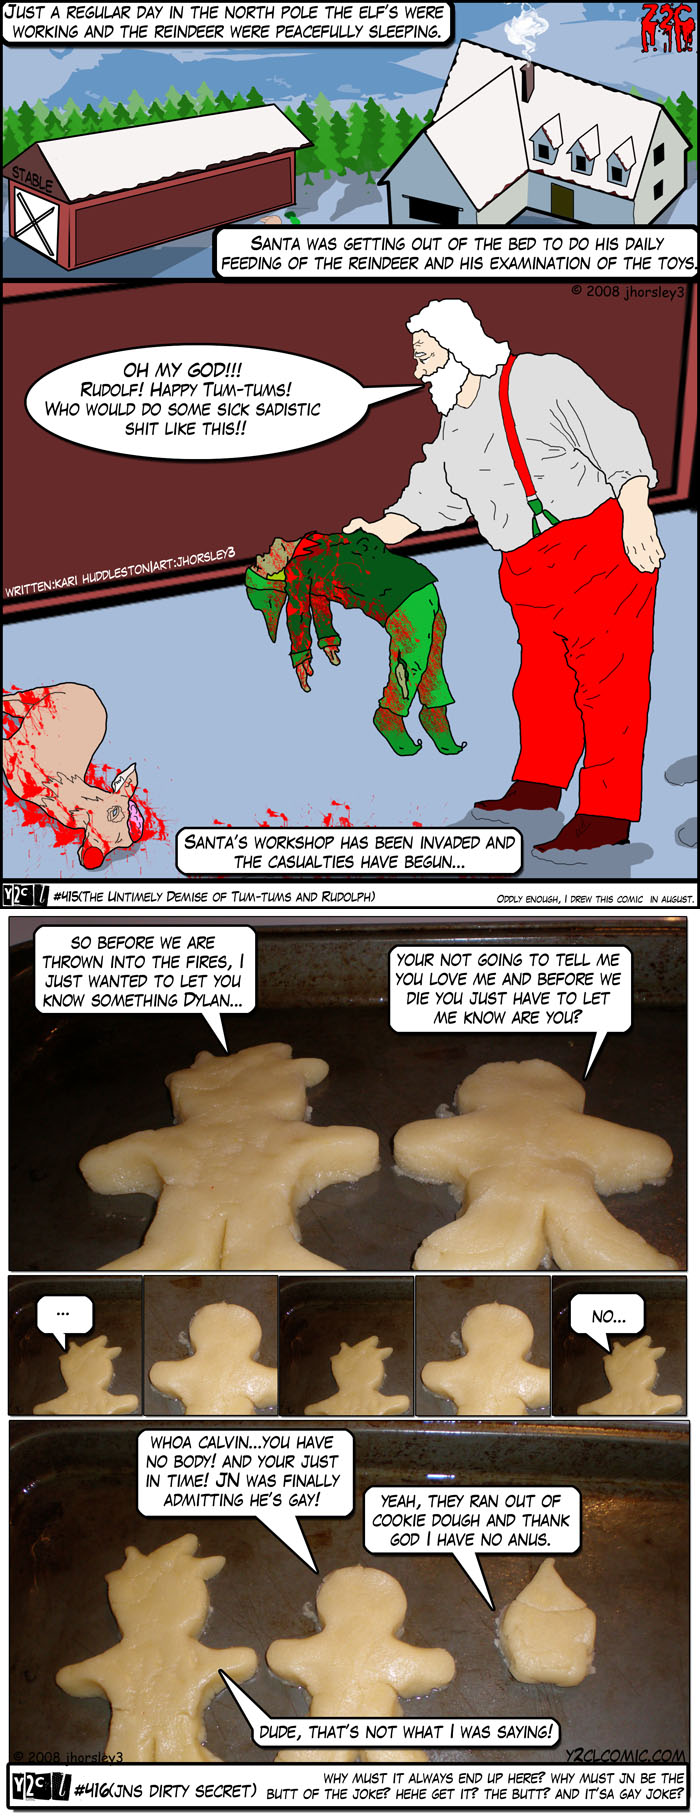 The Untimely Demise Of Tum Tums And Rudolph